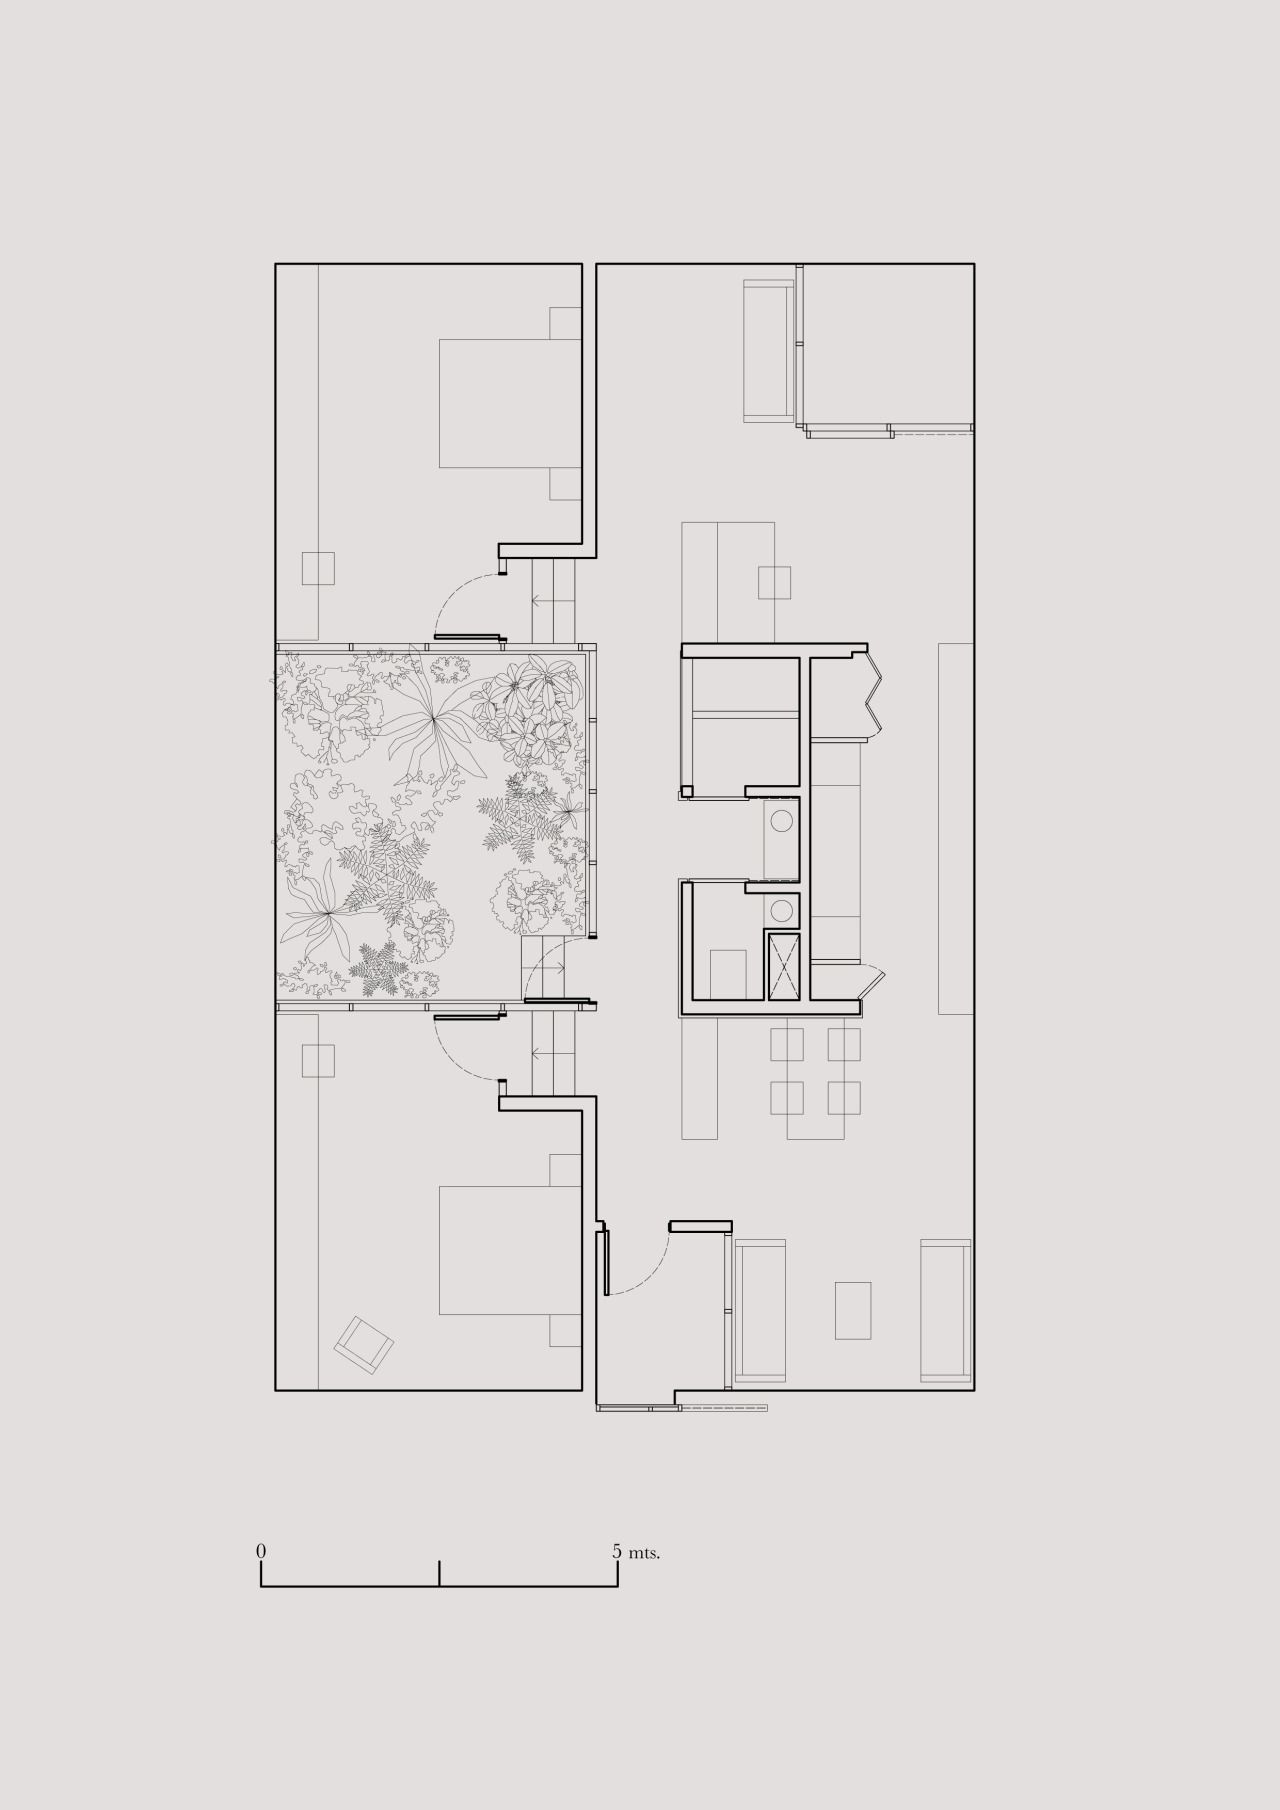 Pin On Plans Sections And Diagrams